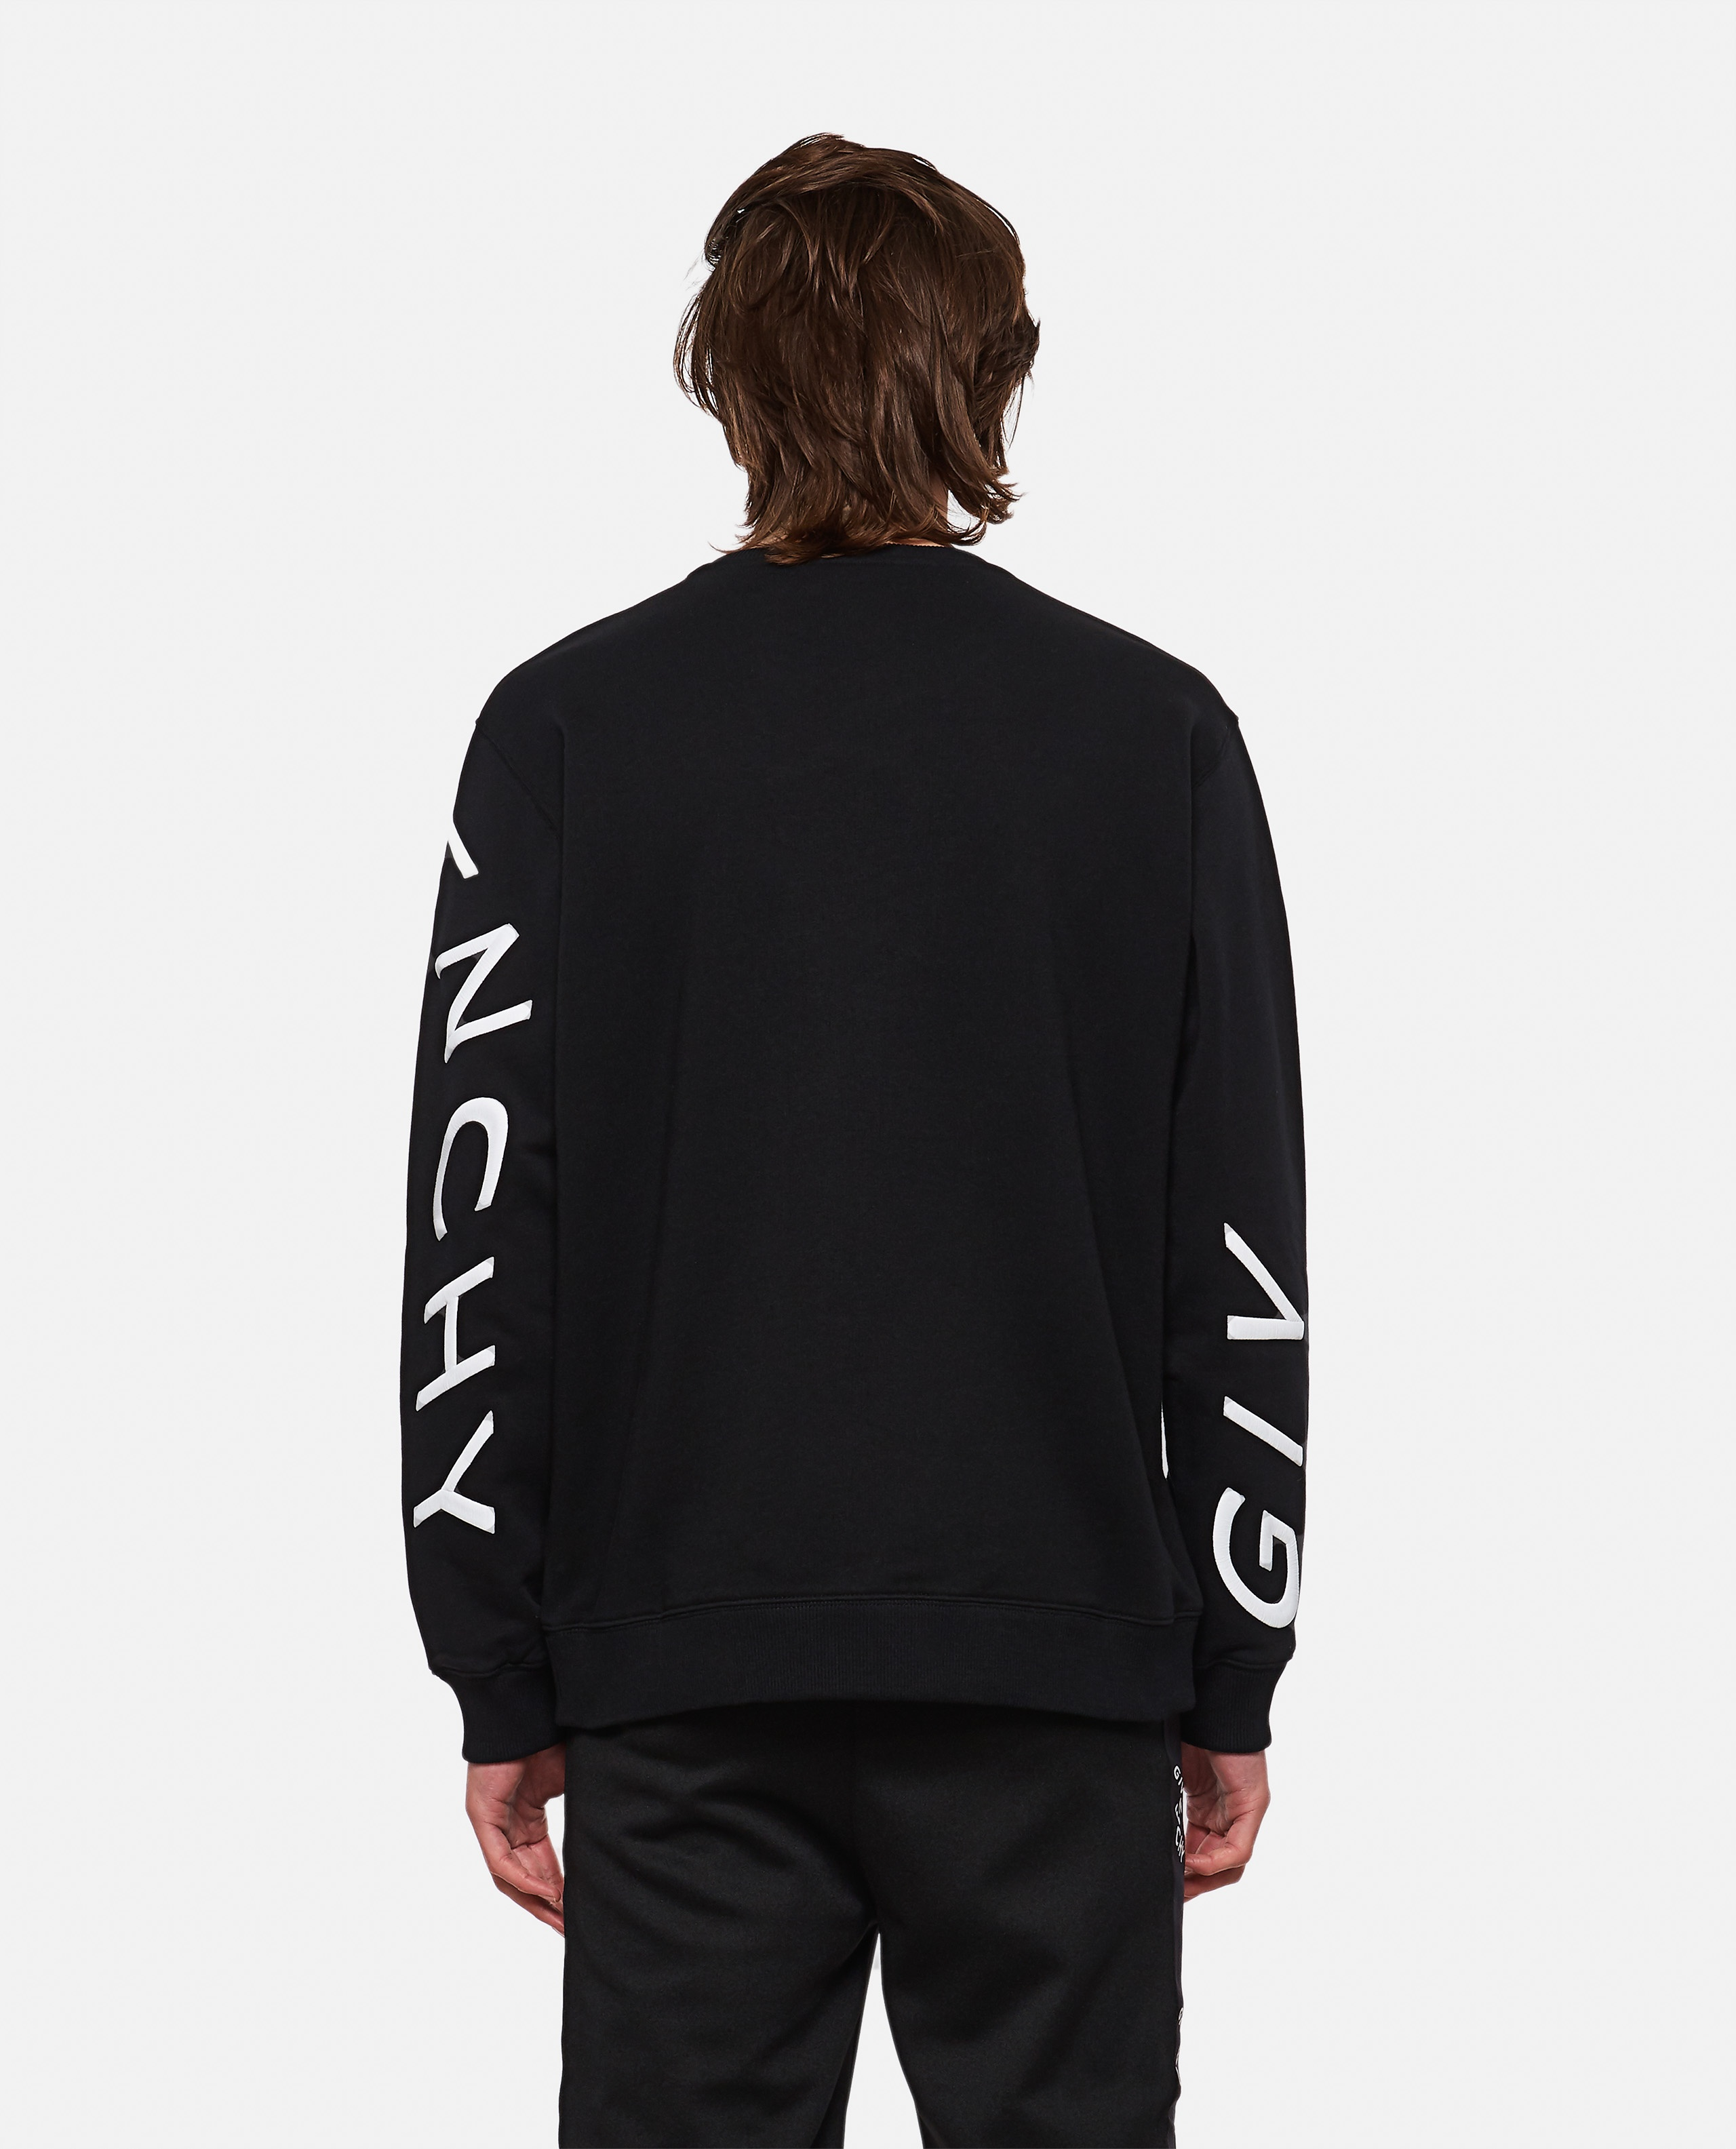 Refracted sweatshirt with embroidery Men Givenchy 000302000044348 3